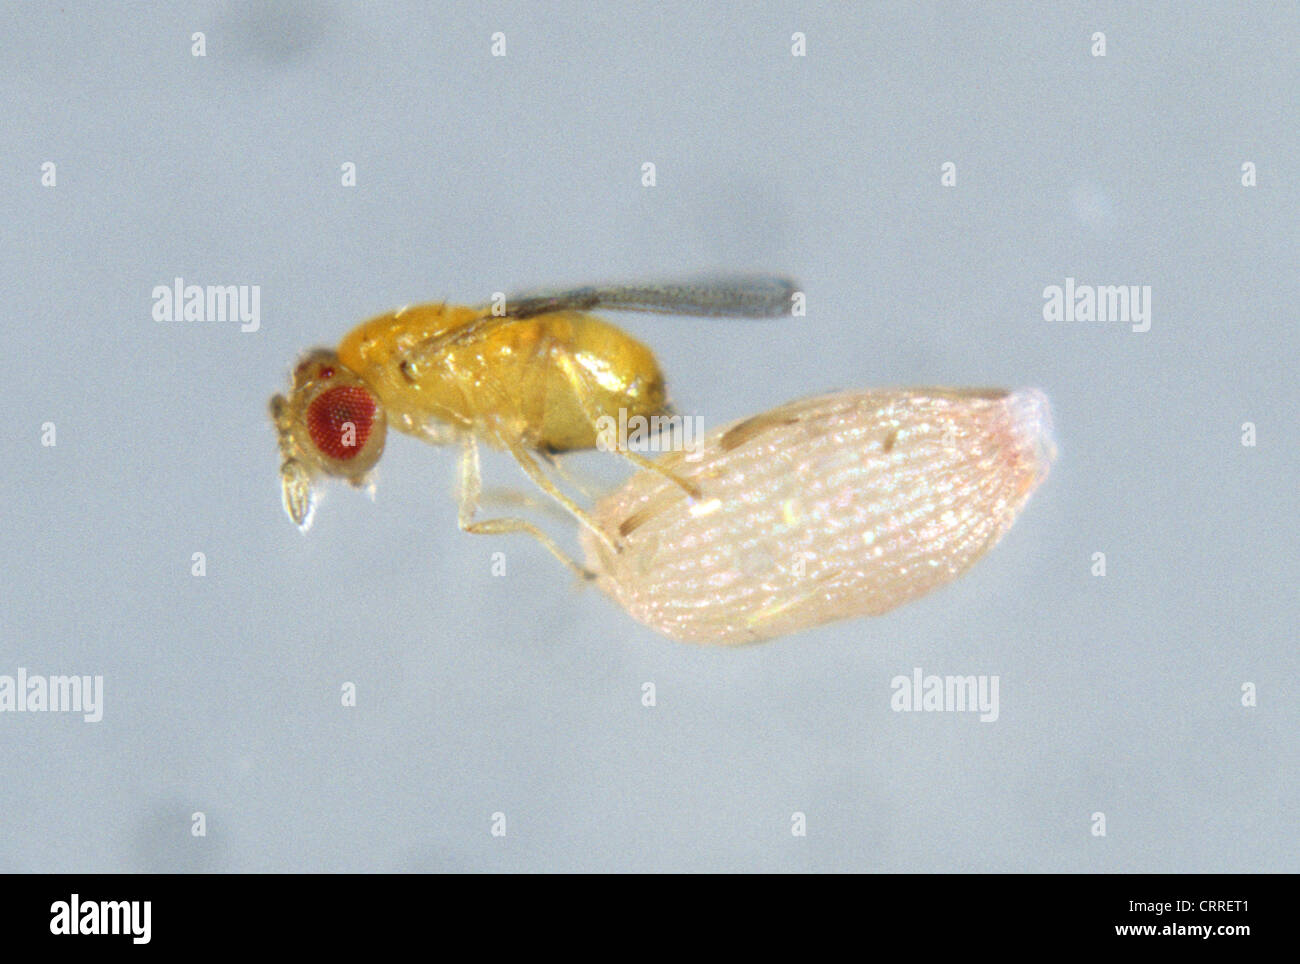 Parasitoid wasp (Trichogramma sp.) with angoumois grain moth egg - Stock Image